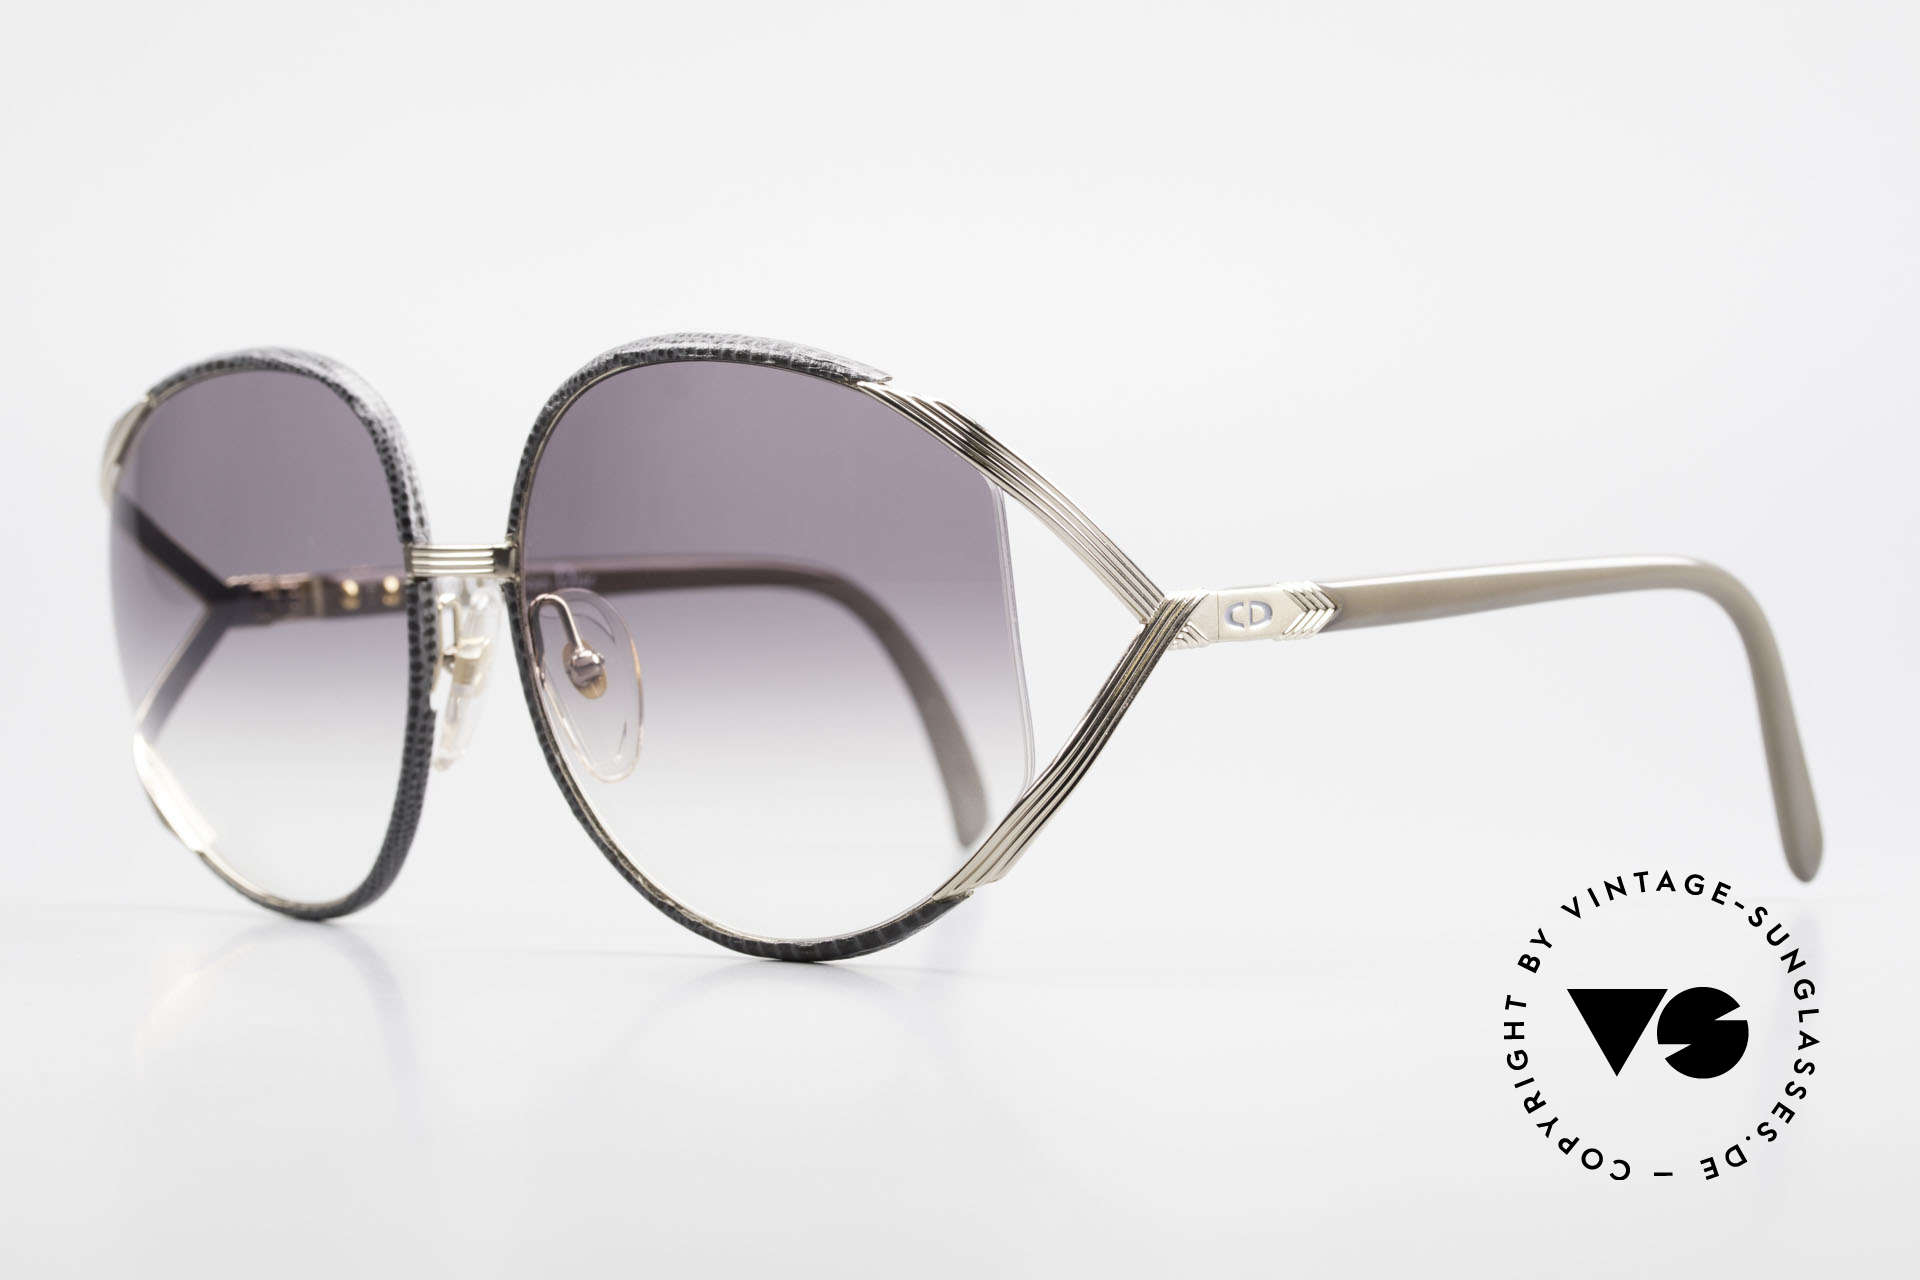 Christian Dior 2250 Rihanna Leather Sunglasses, precious 1980's model and utterly unique leather edition!, Made for Women